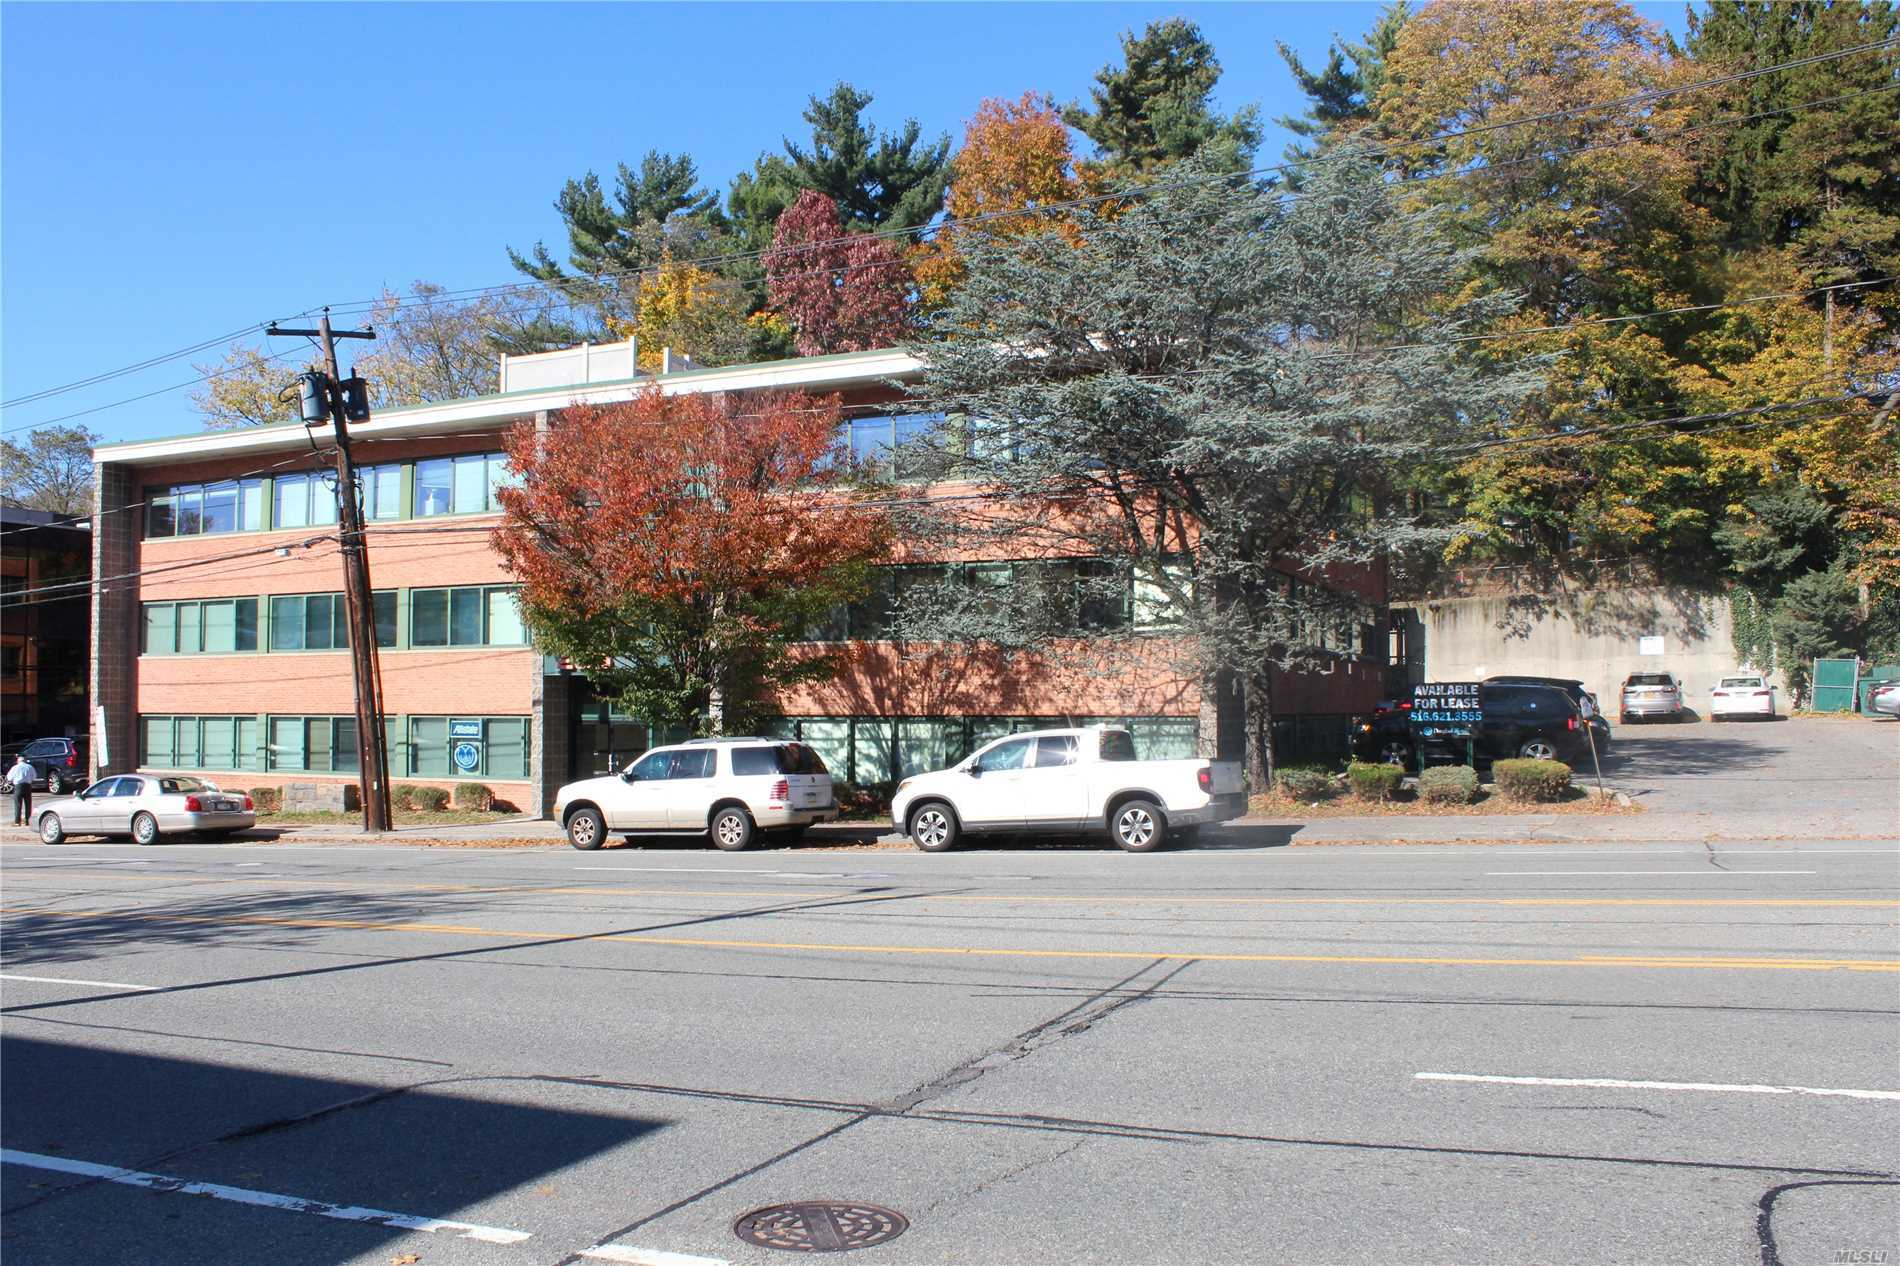 Queens/Nassau Border! Spaces Available In Prestige Elevator Building With Great Visibility, In Prime Location On Northern Blvd In Great Neck. The Property Offers 24/7 Security Camera, Indoor Reserved Parking For Tenants And Covered Parking For Visitors. Possibility Of Small Office Units Build To Suit. Ample Street Parking. Close To Ground Transportation, Lirr, And Major Highways. Other Units May Be Available In Adjoining Properties.